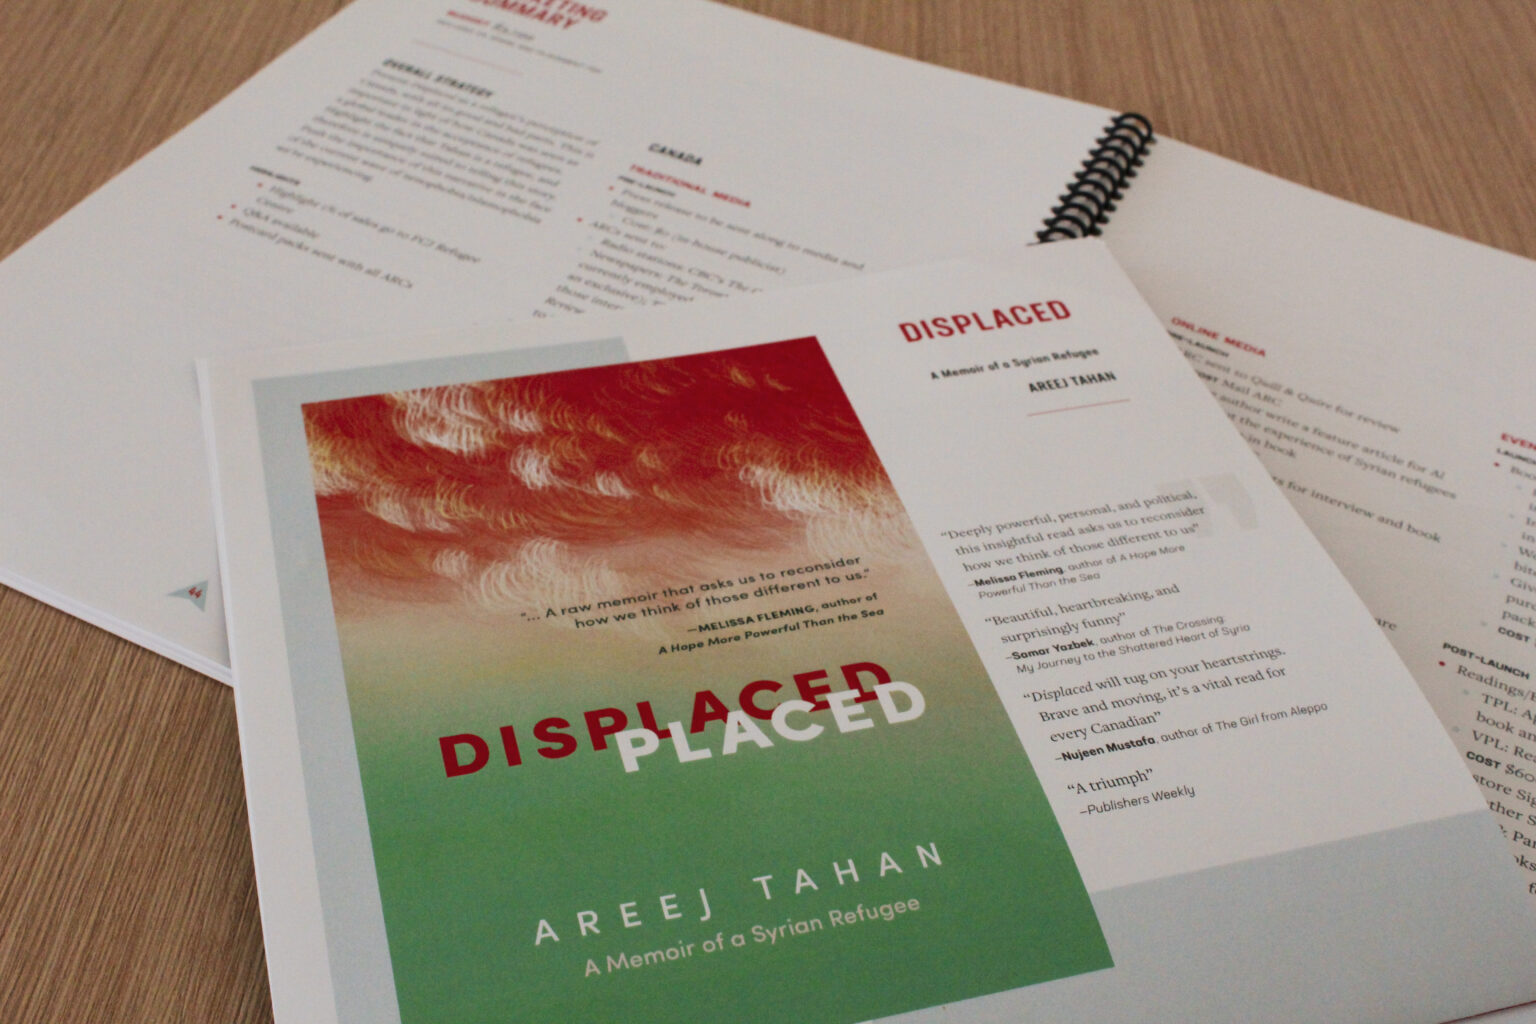 Turn Point Press project materials – Displaced catalogue page